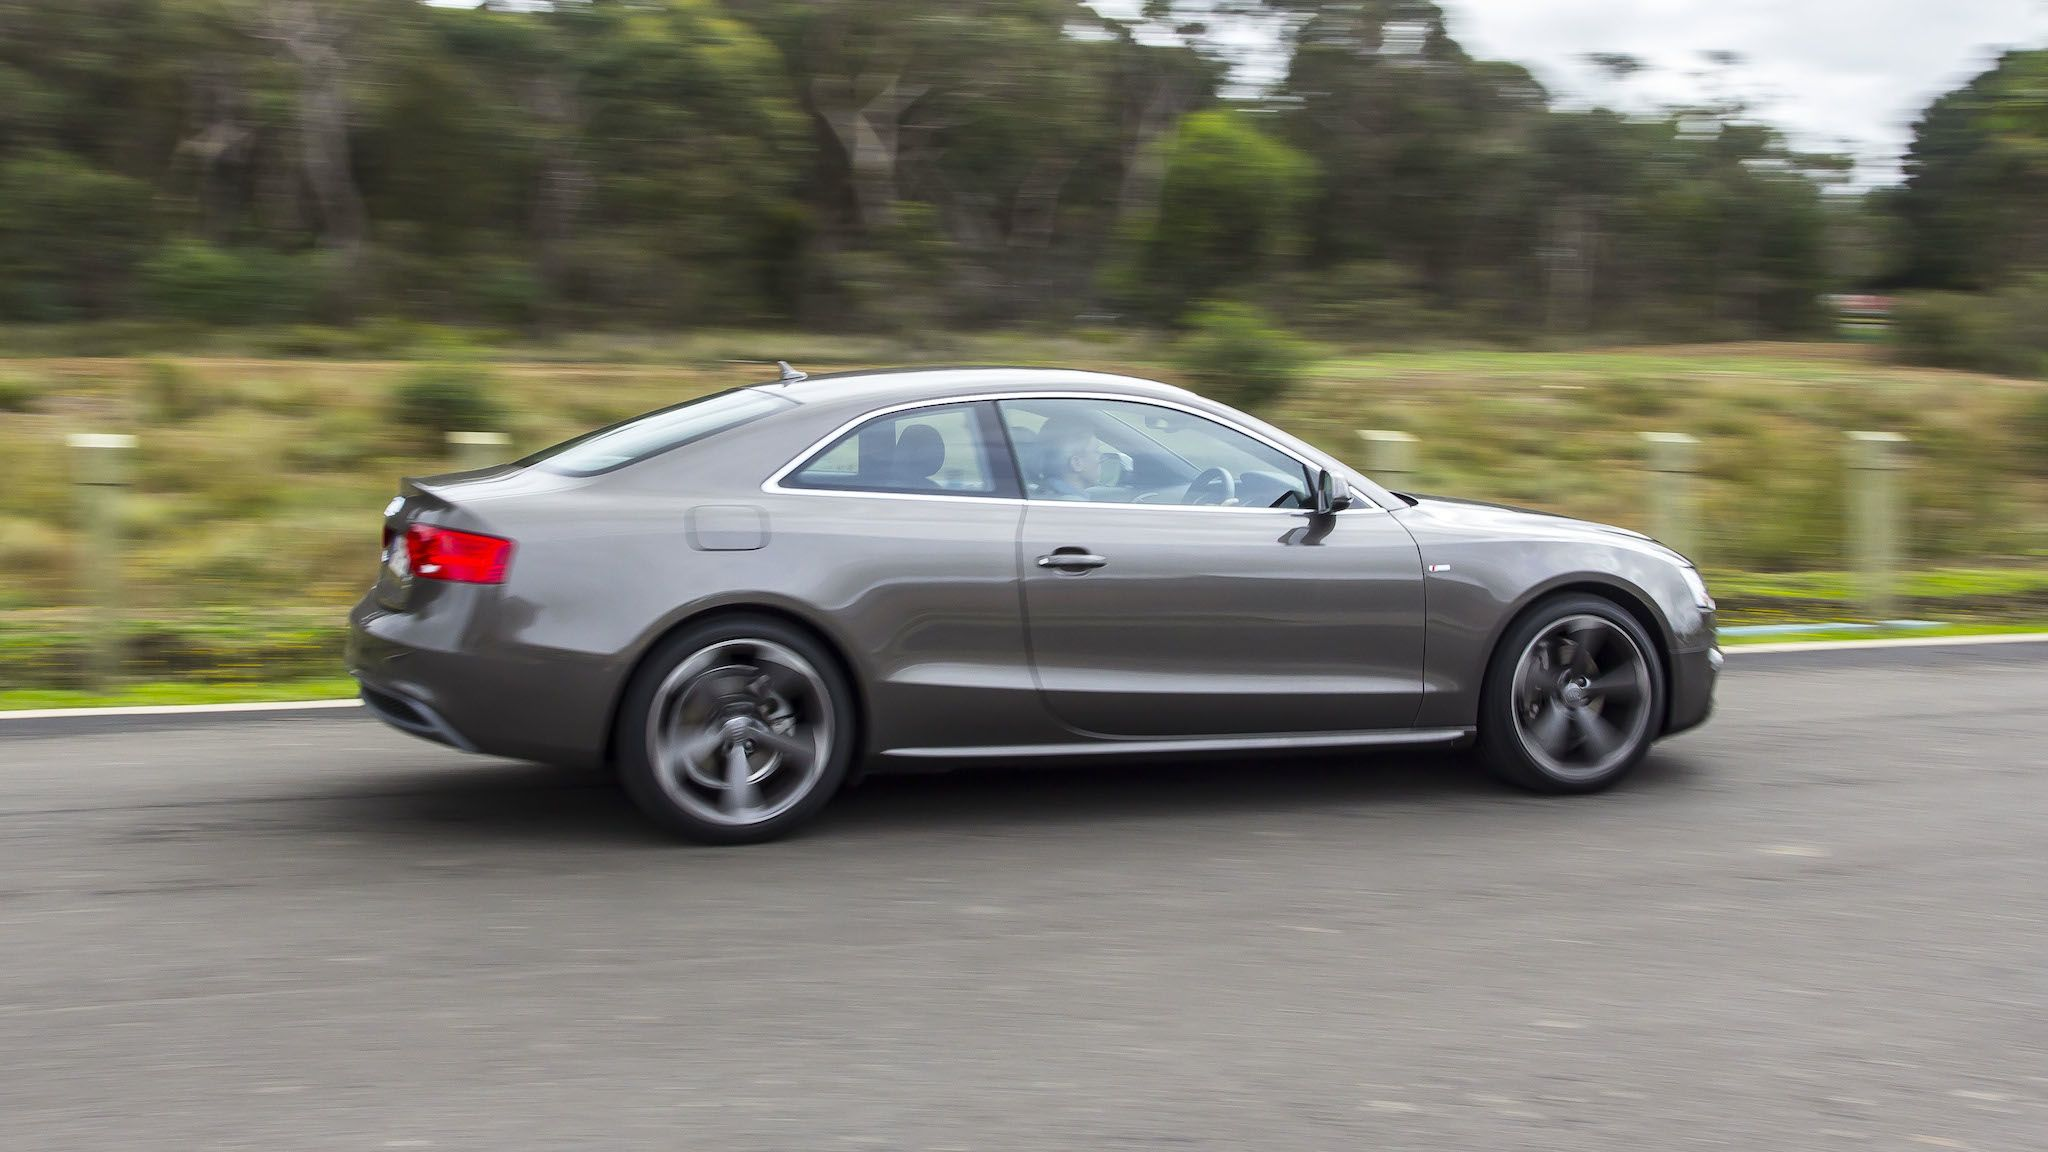 Car Comparison Audi A5 V Bmw 4 Series : Comparison Review - Photos